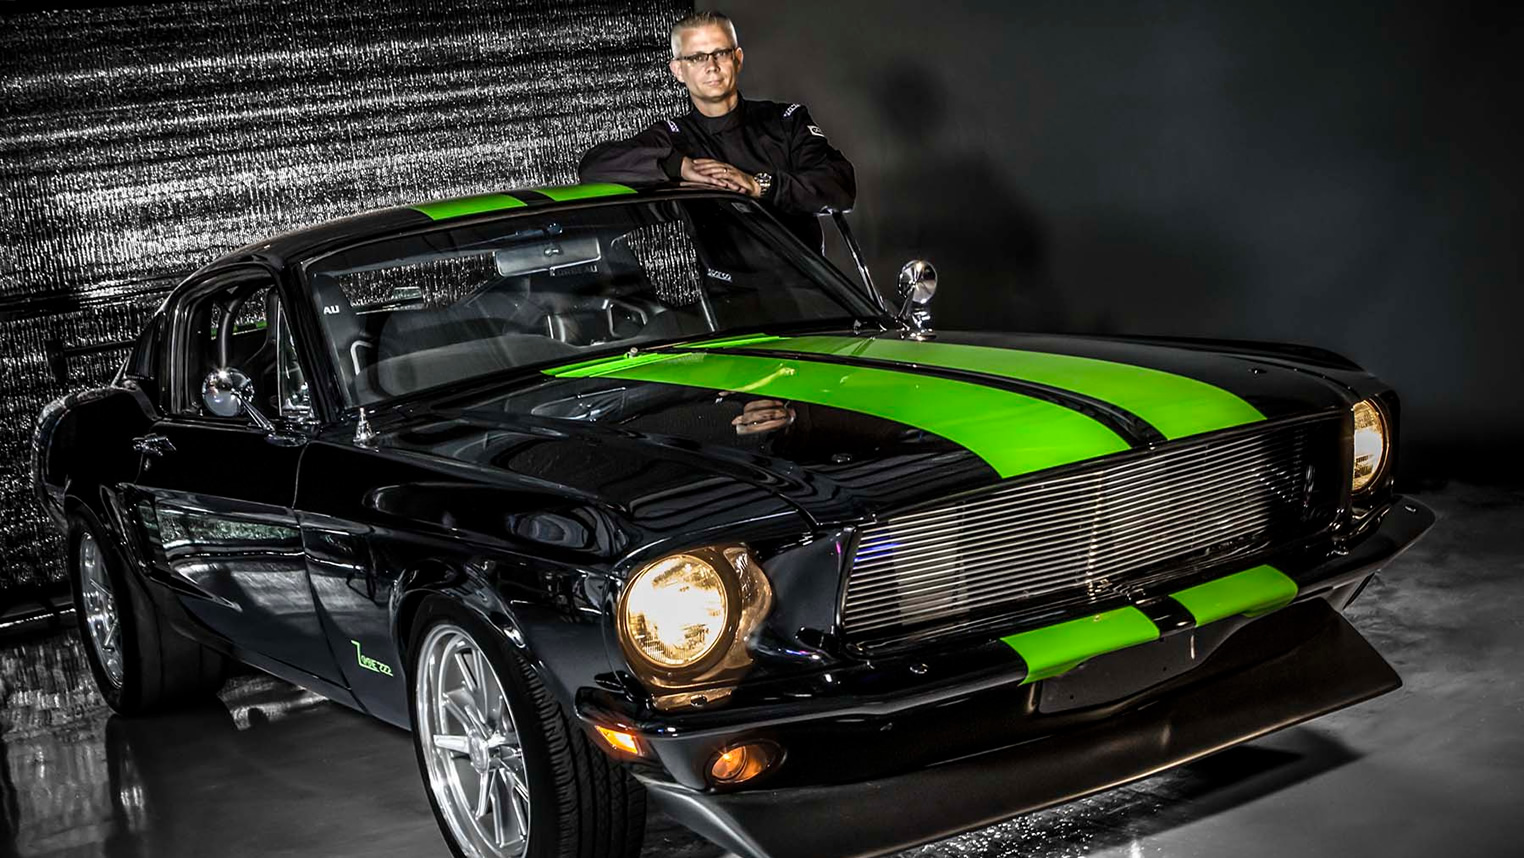 The Fastest Car In The World 2015 >> Meet the Zombie 222 - Carfeed